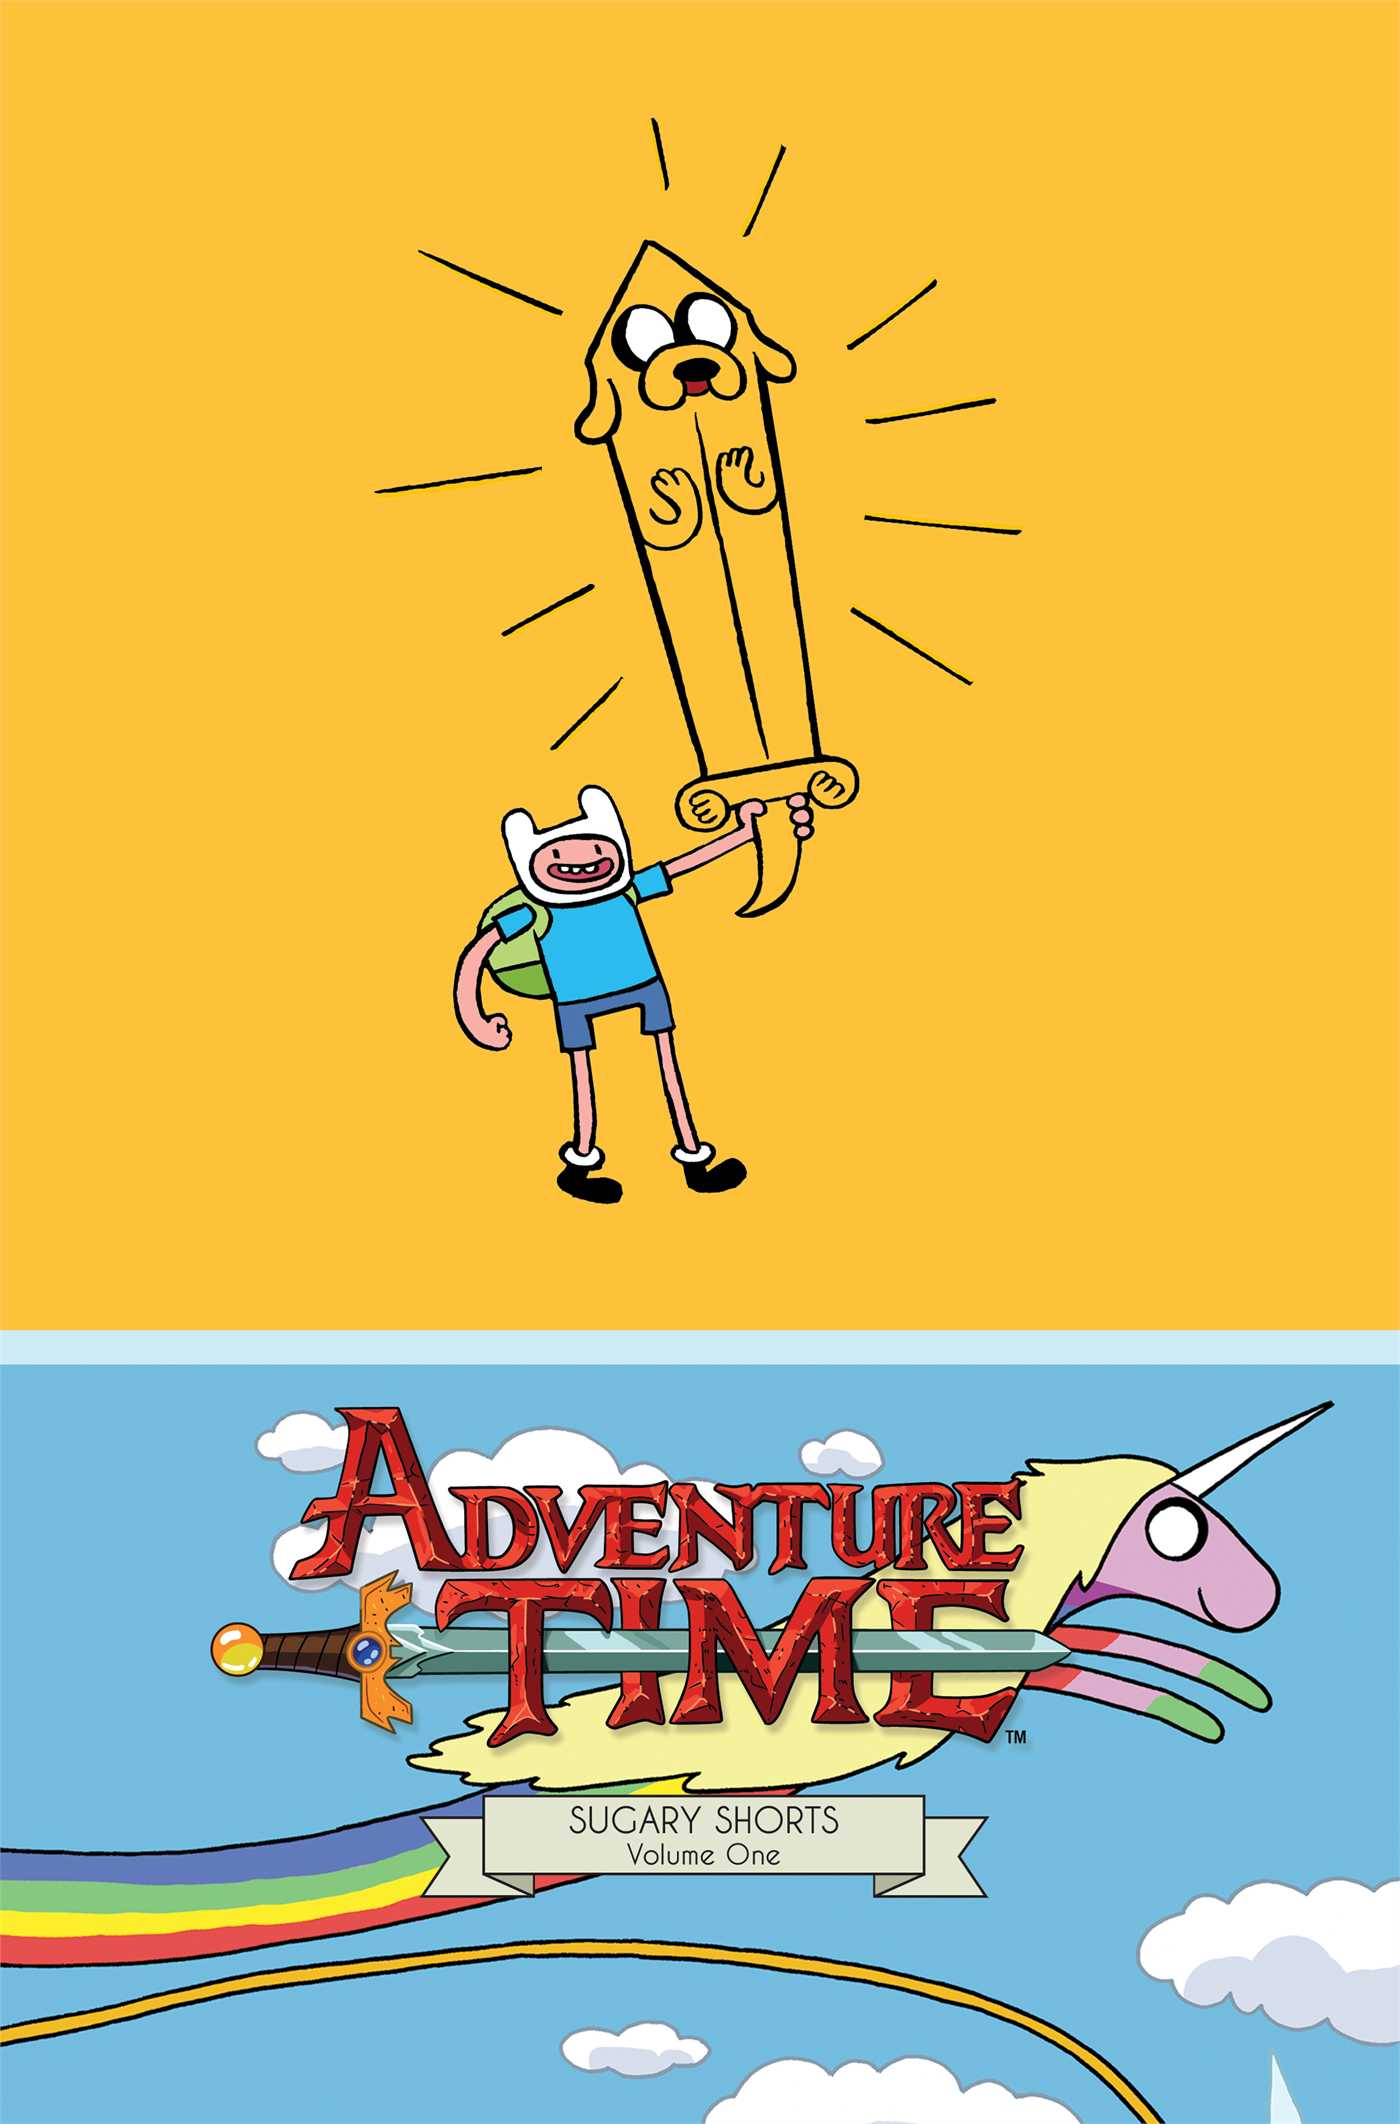 Adventure-time-sugary-shorts-vol-1-mathematical-9781608863334_hr